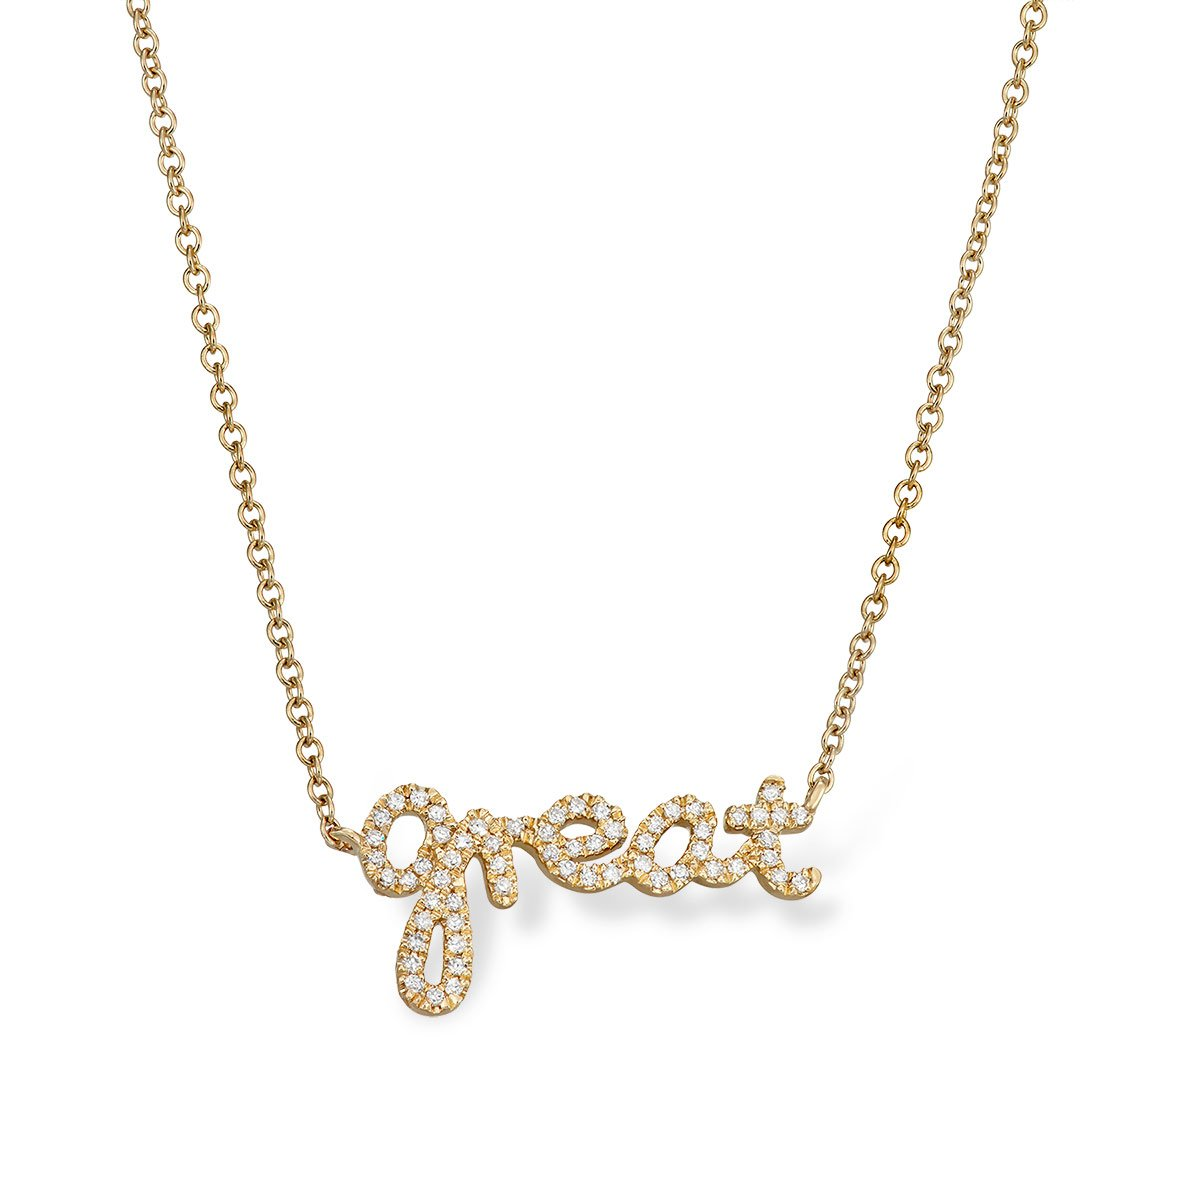 'Great' Message Necklace - Serena Williams Jewelry